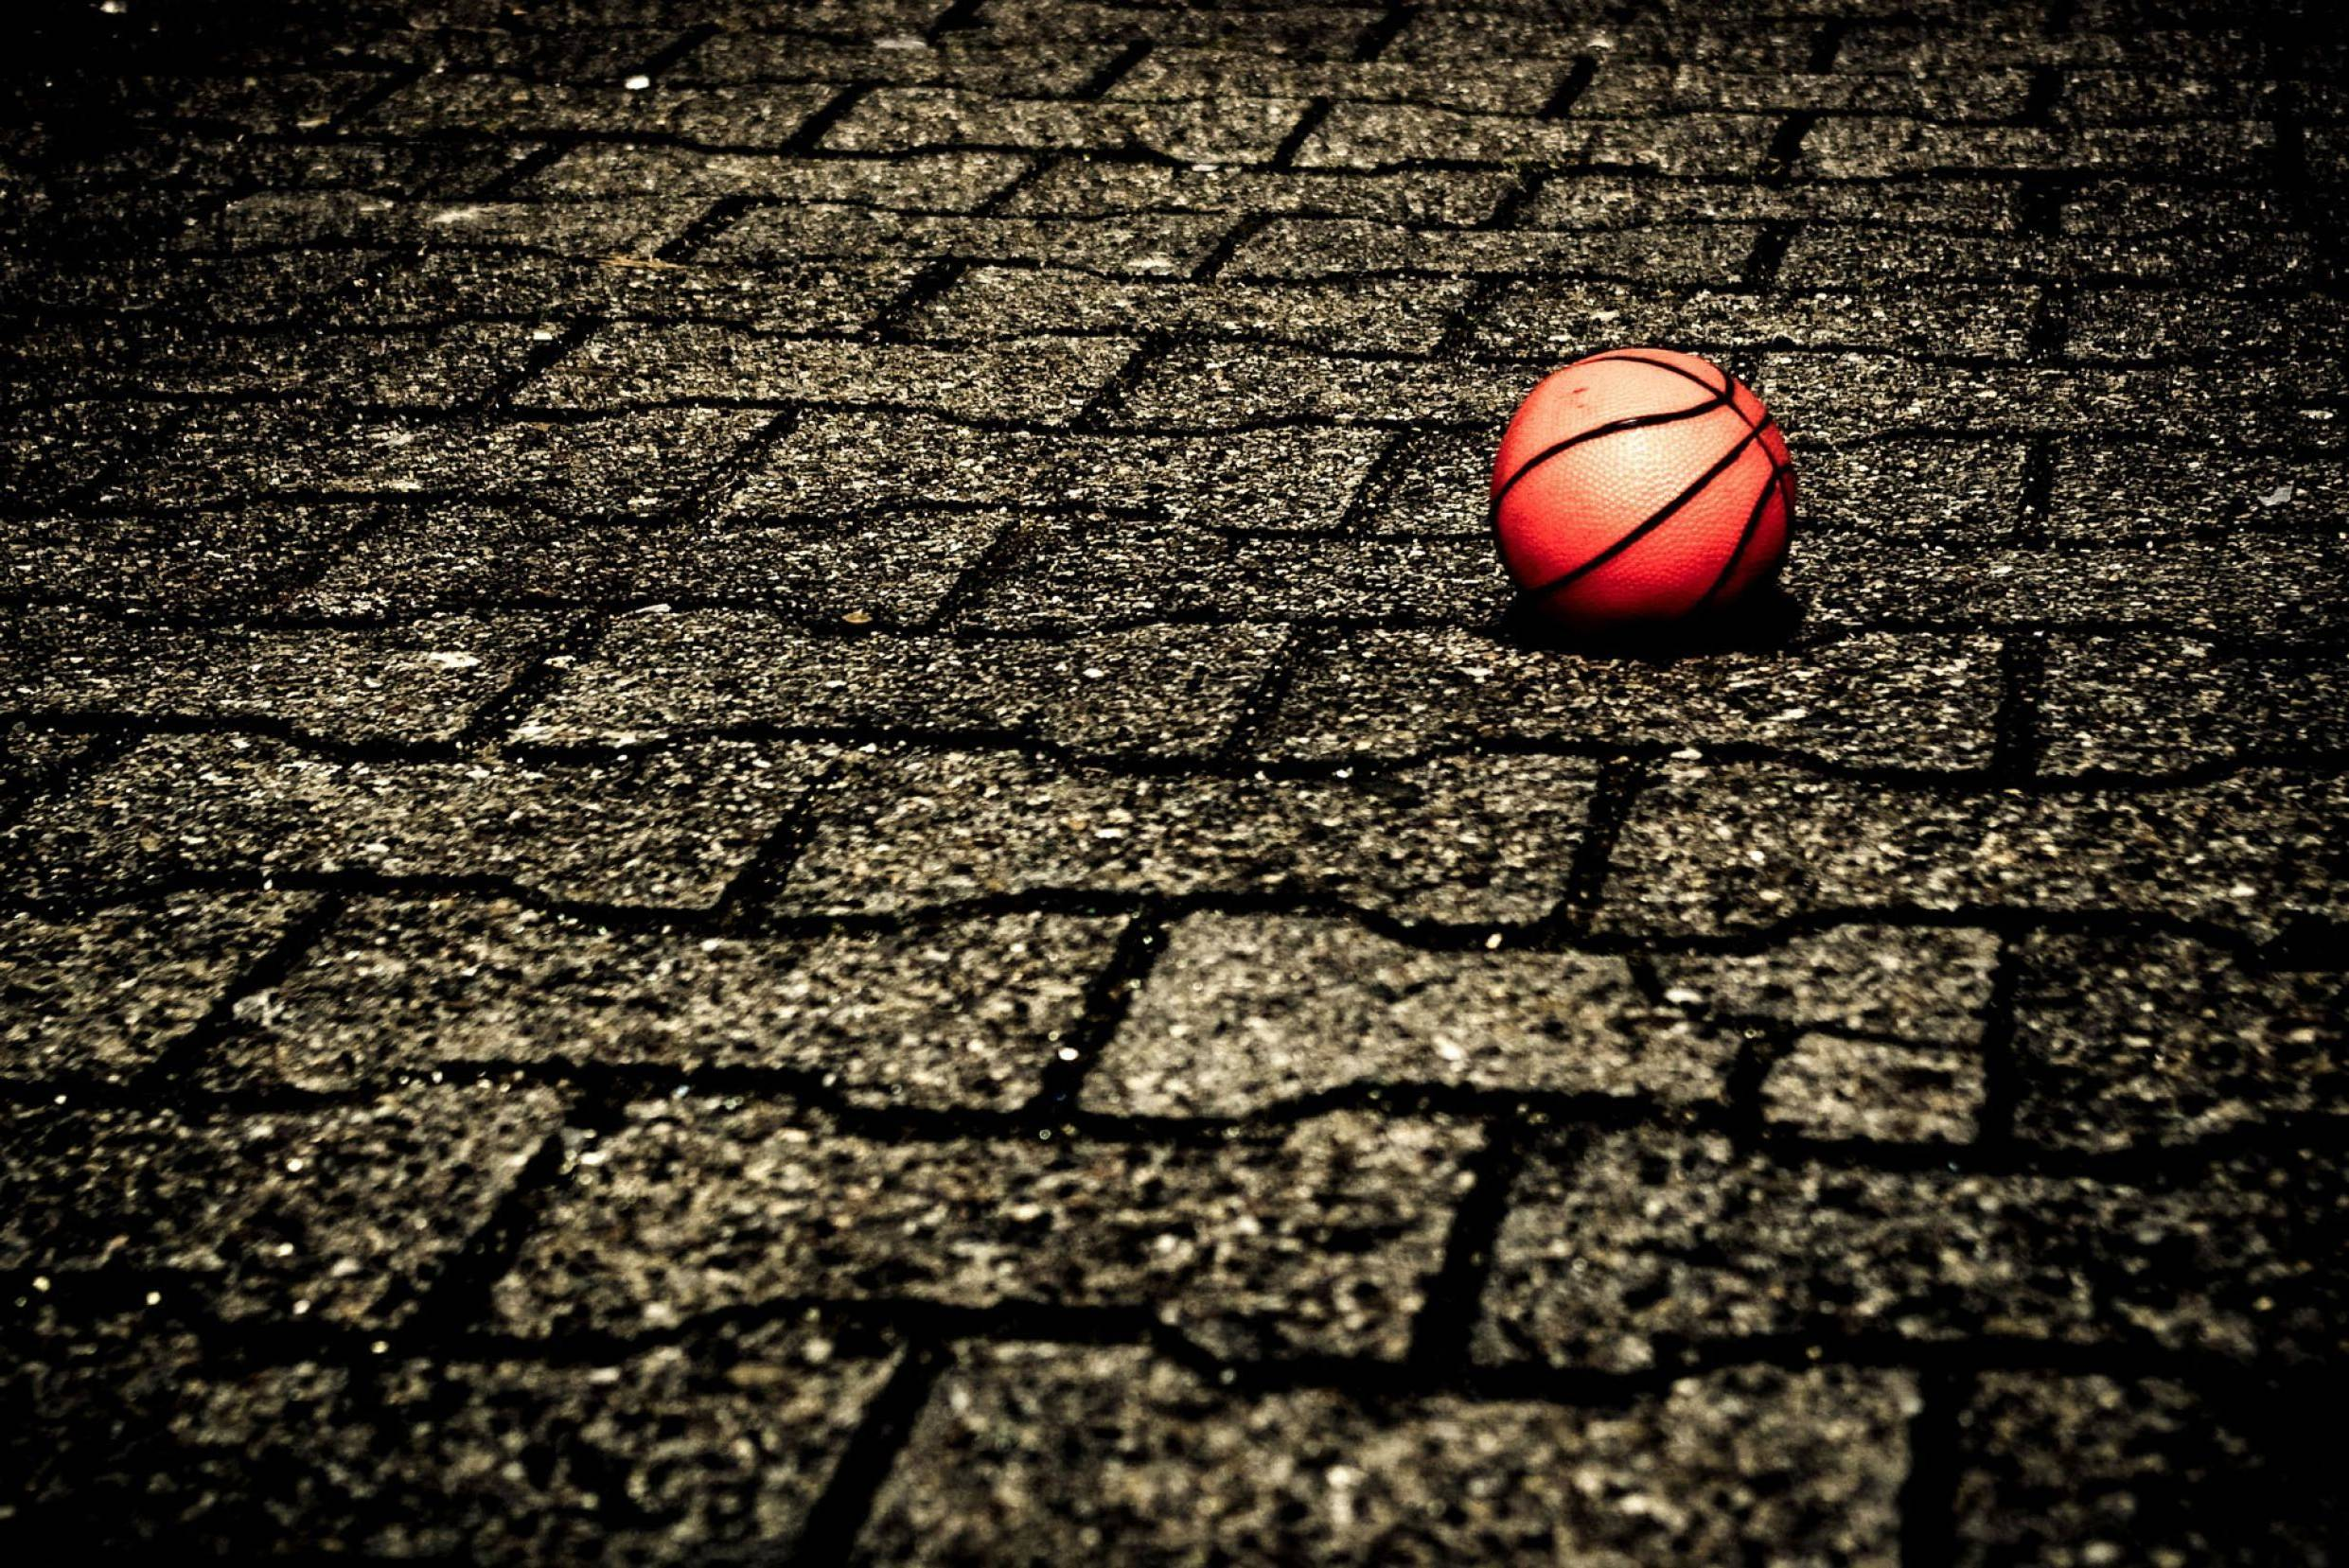 Hd Basket Ball Image